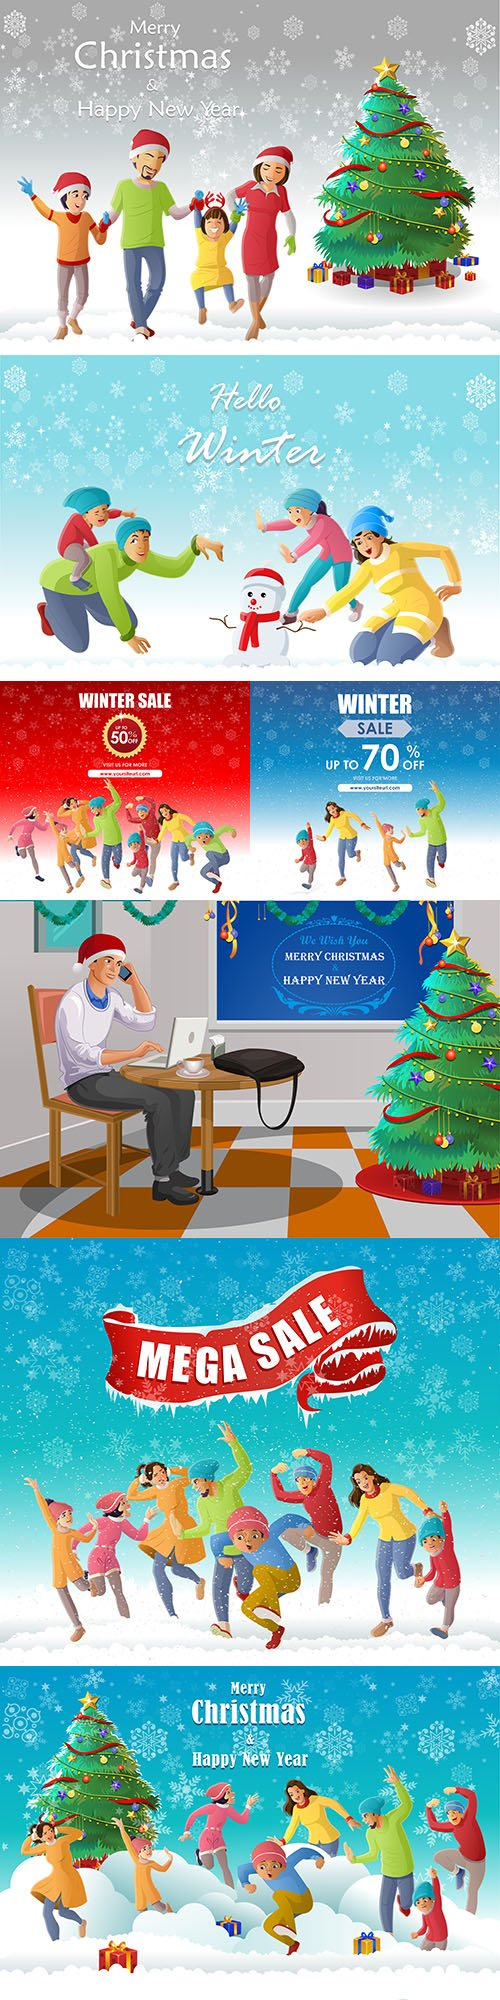 Merry Christmas happy family background illustrations 2